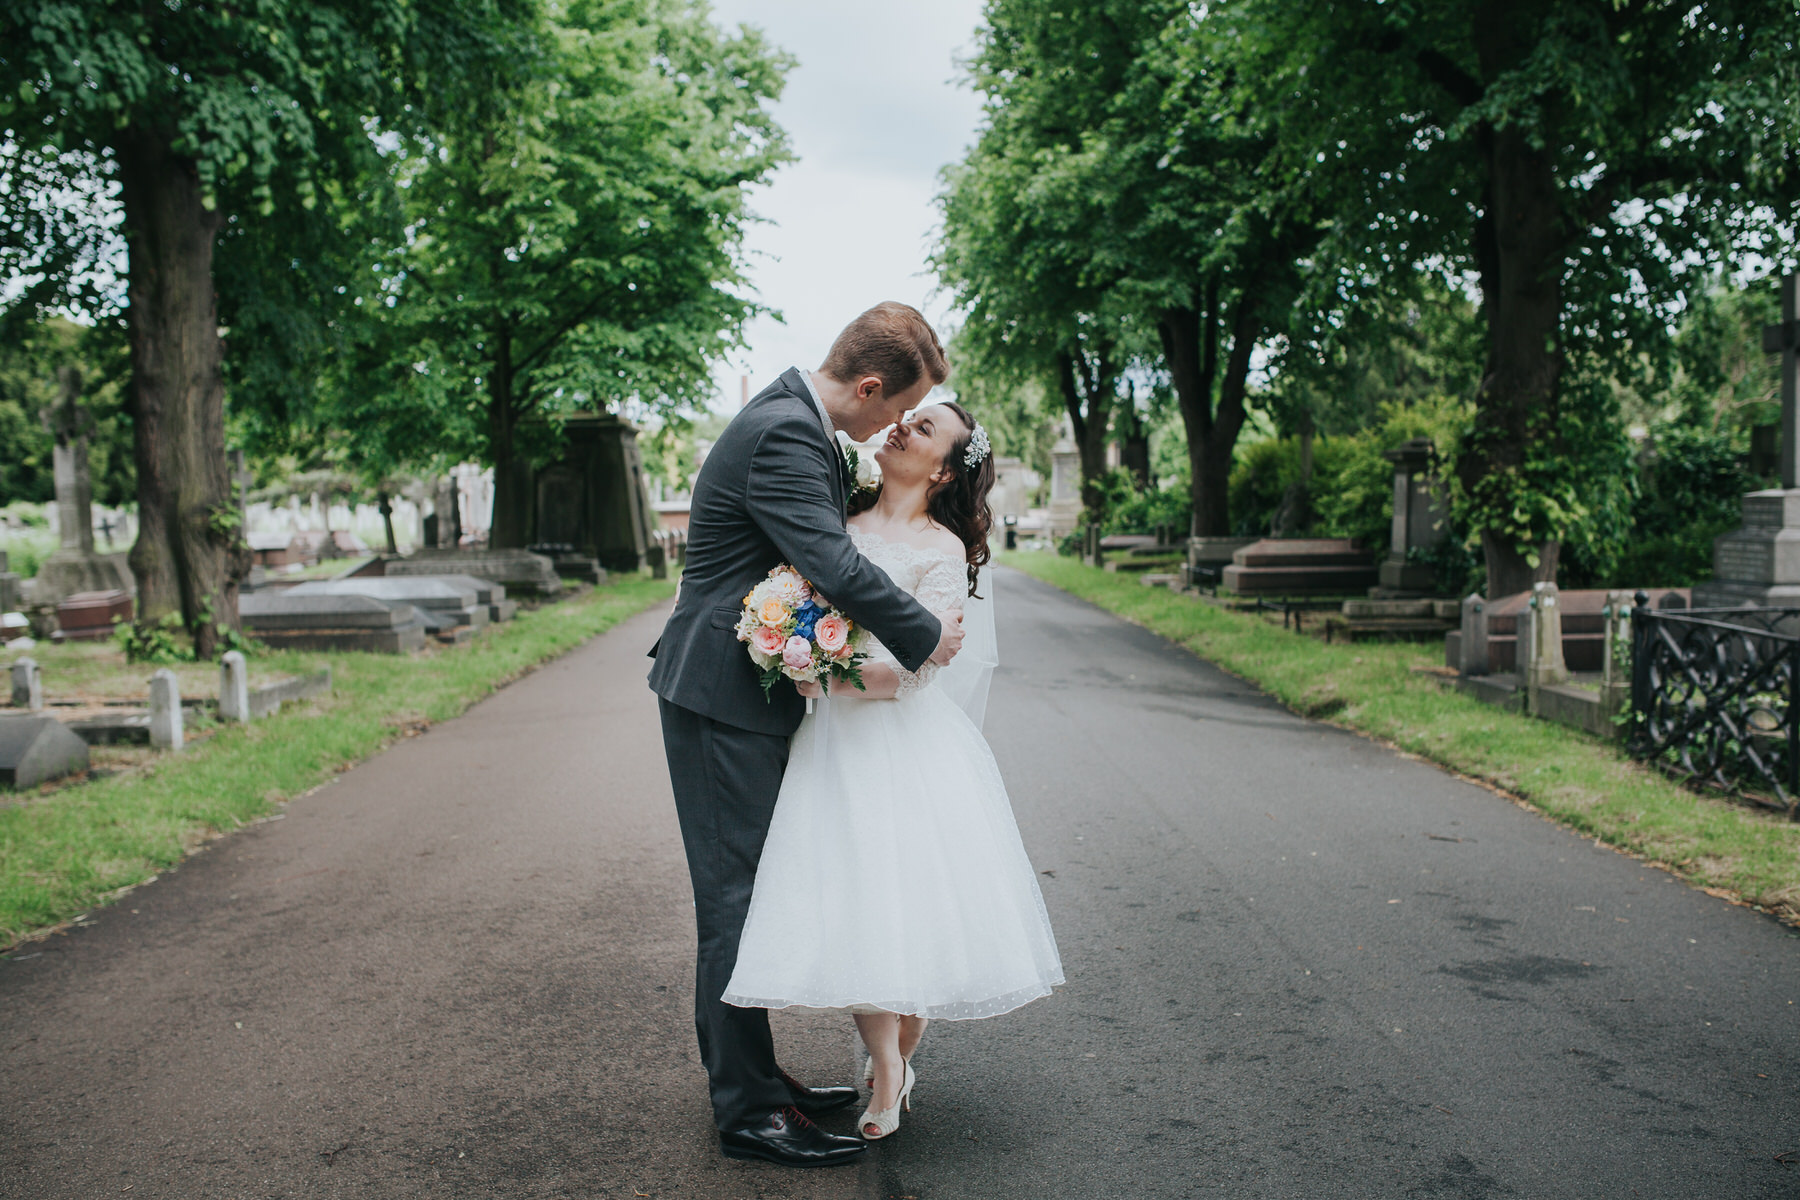 151 groom bride wedding portraits Brompton Cemetery.jpg